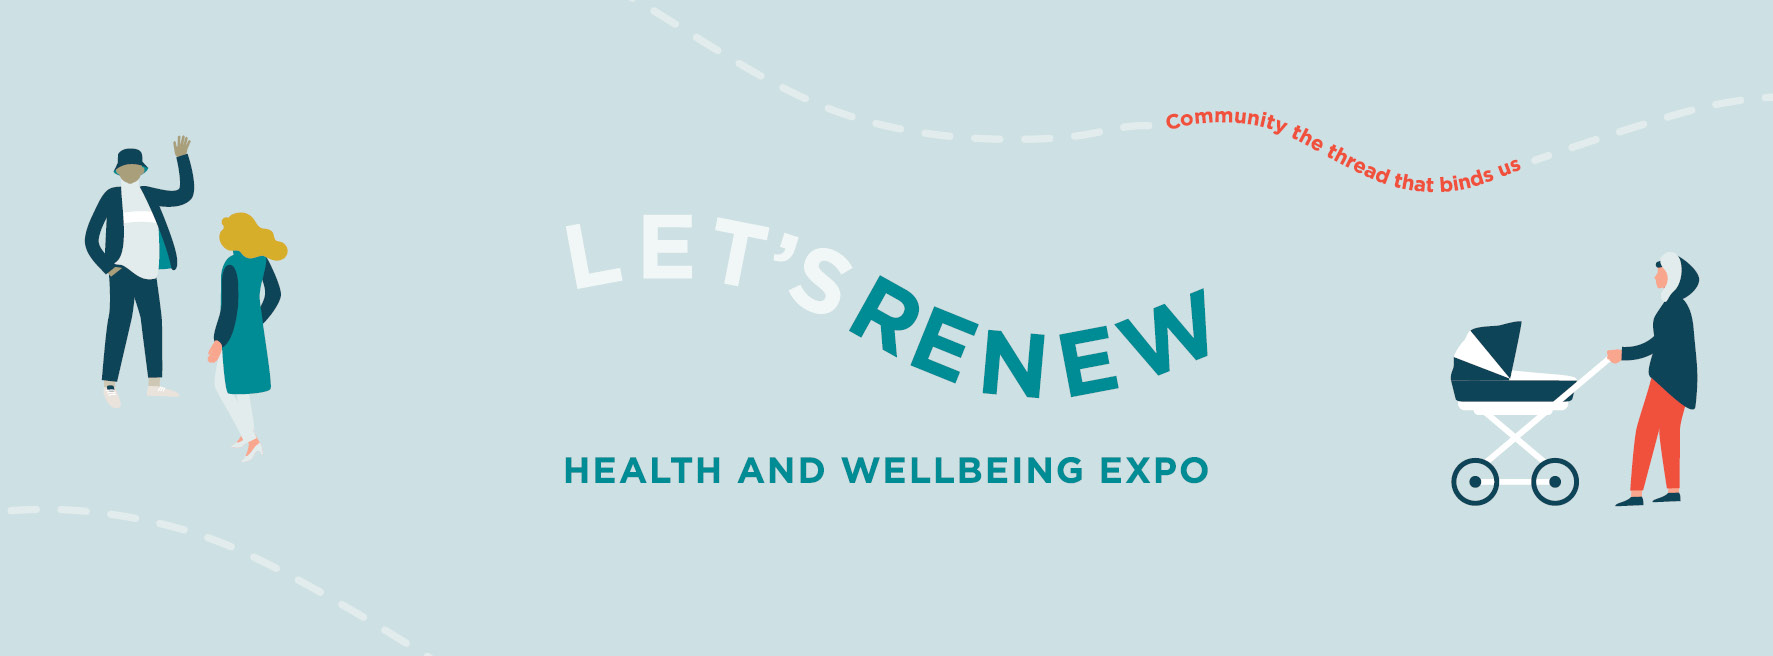 Let's Renew Health and Wellbeing Expo